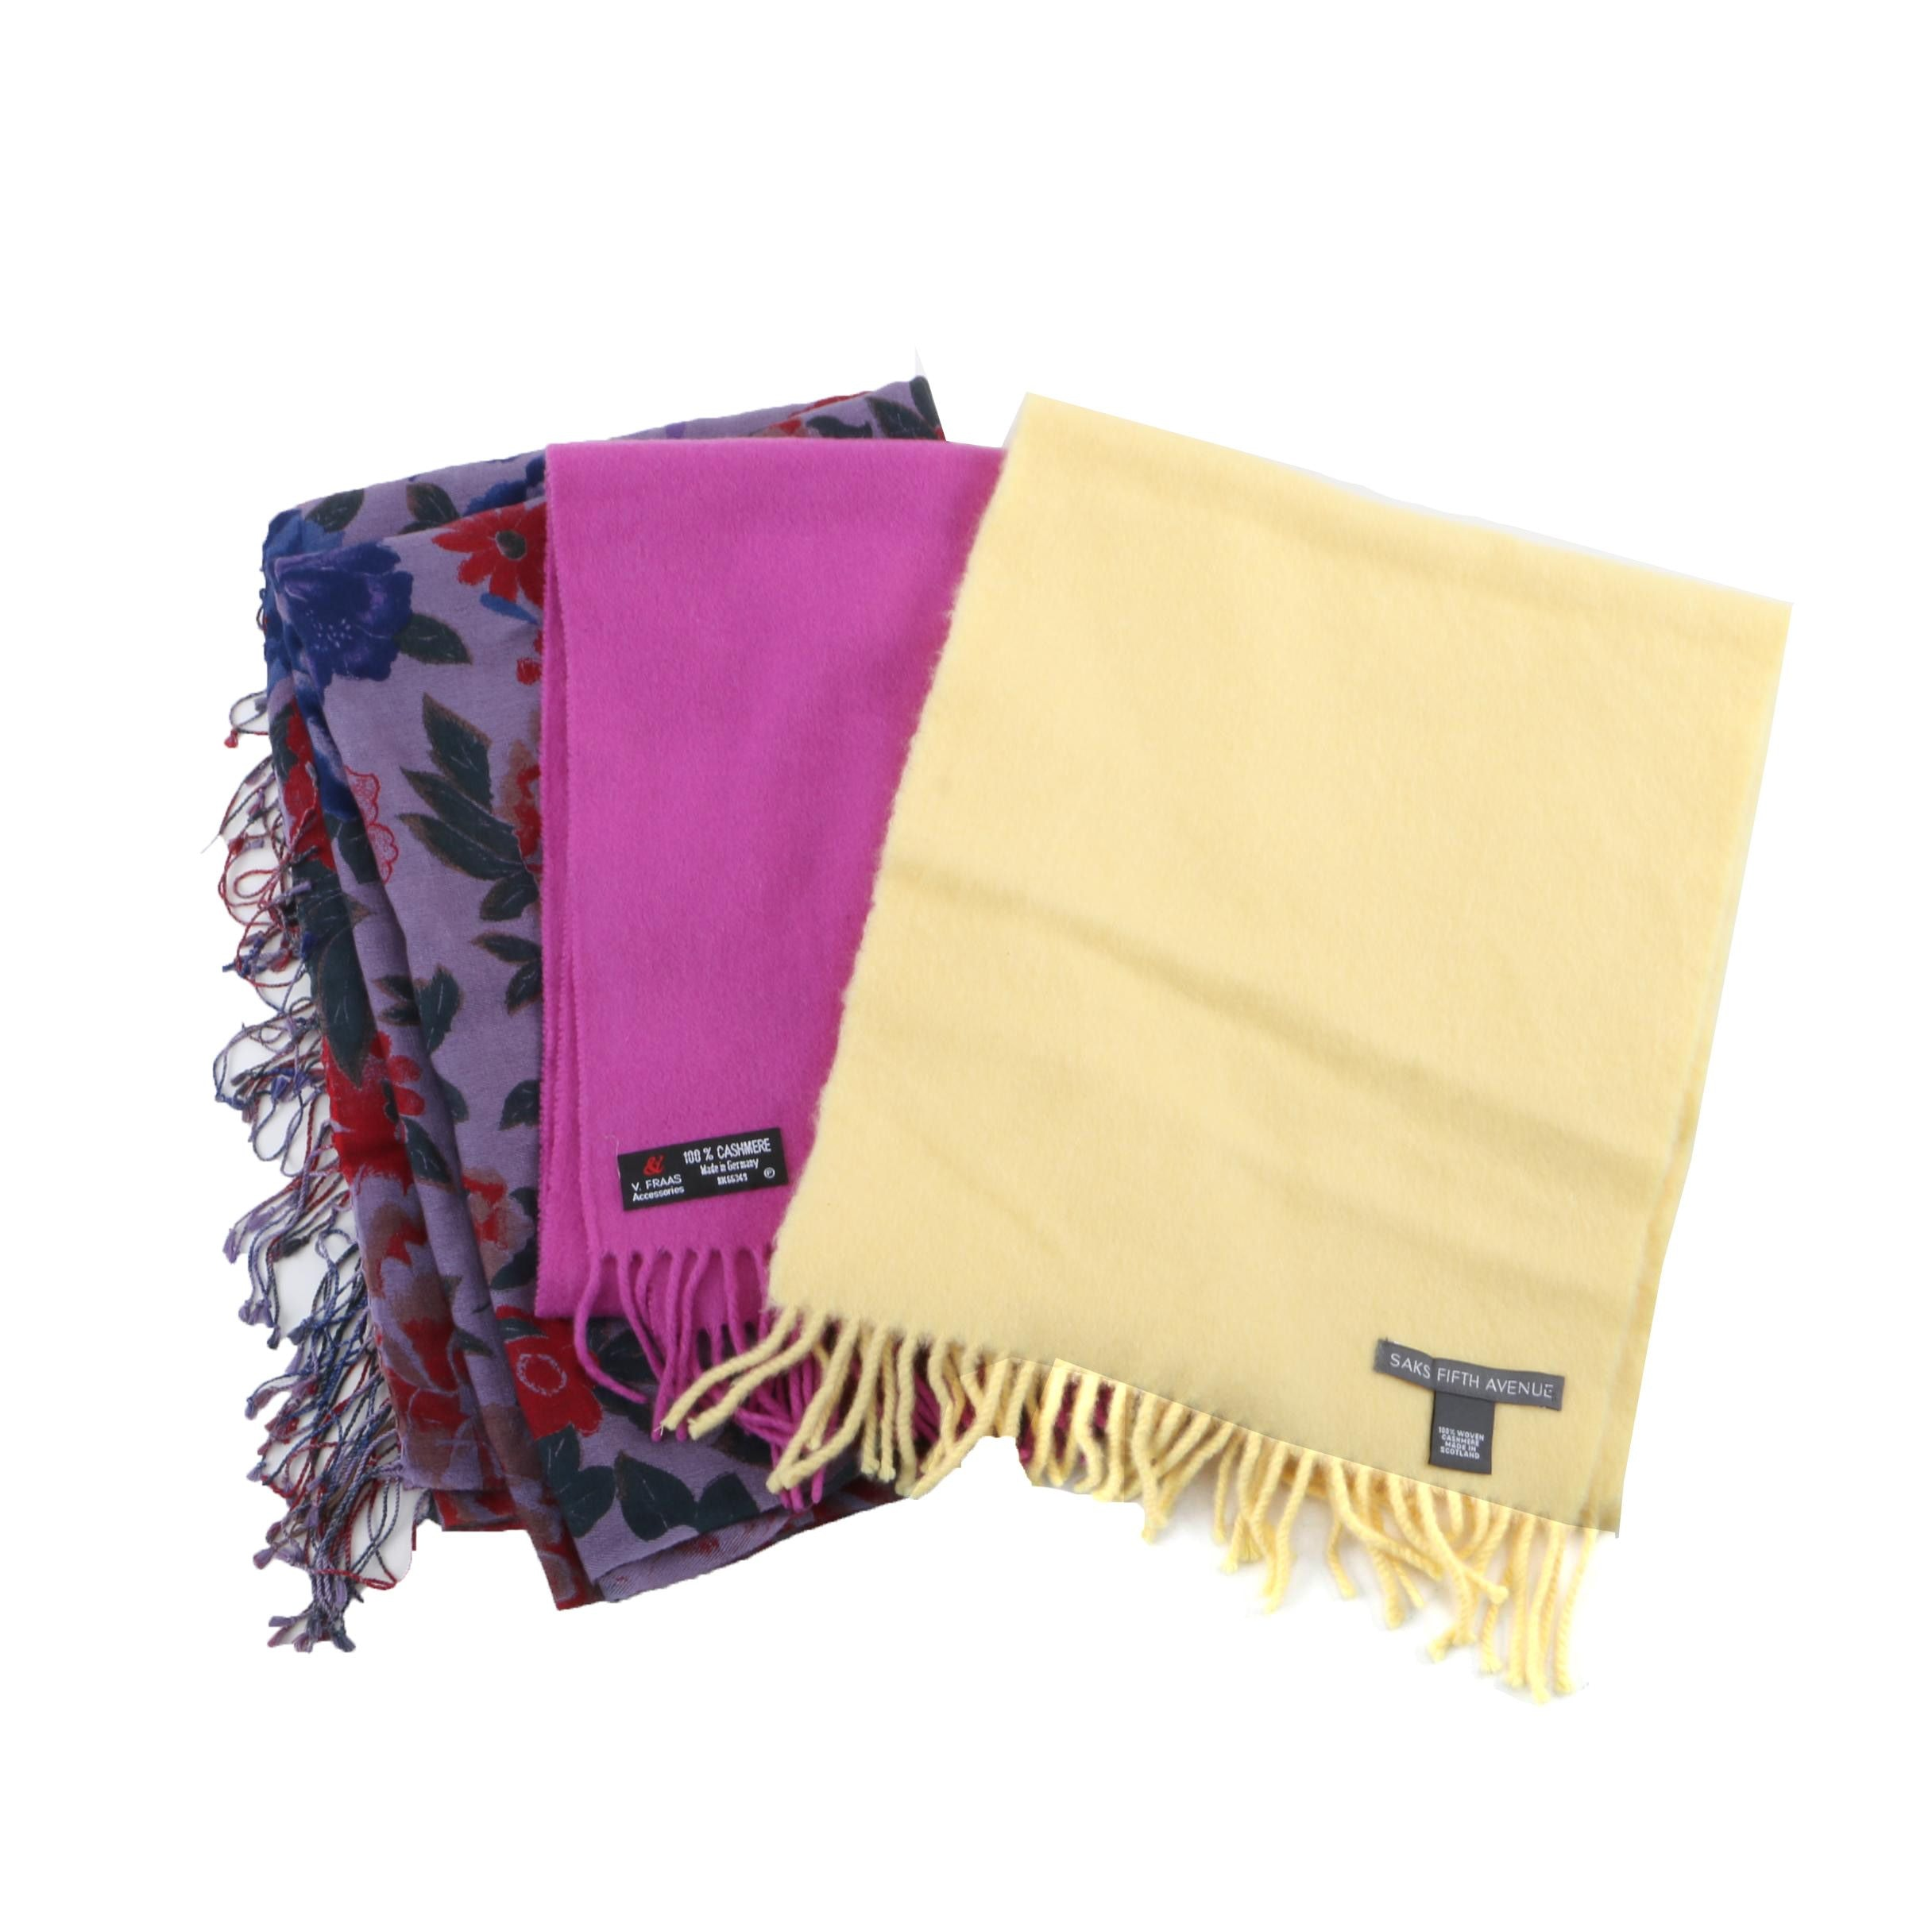 Yarnz Shawl and V. Fraas Cashmere Scarves